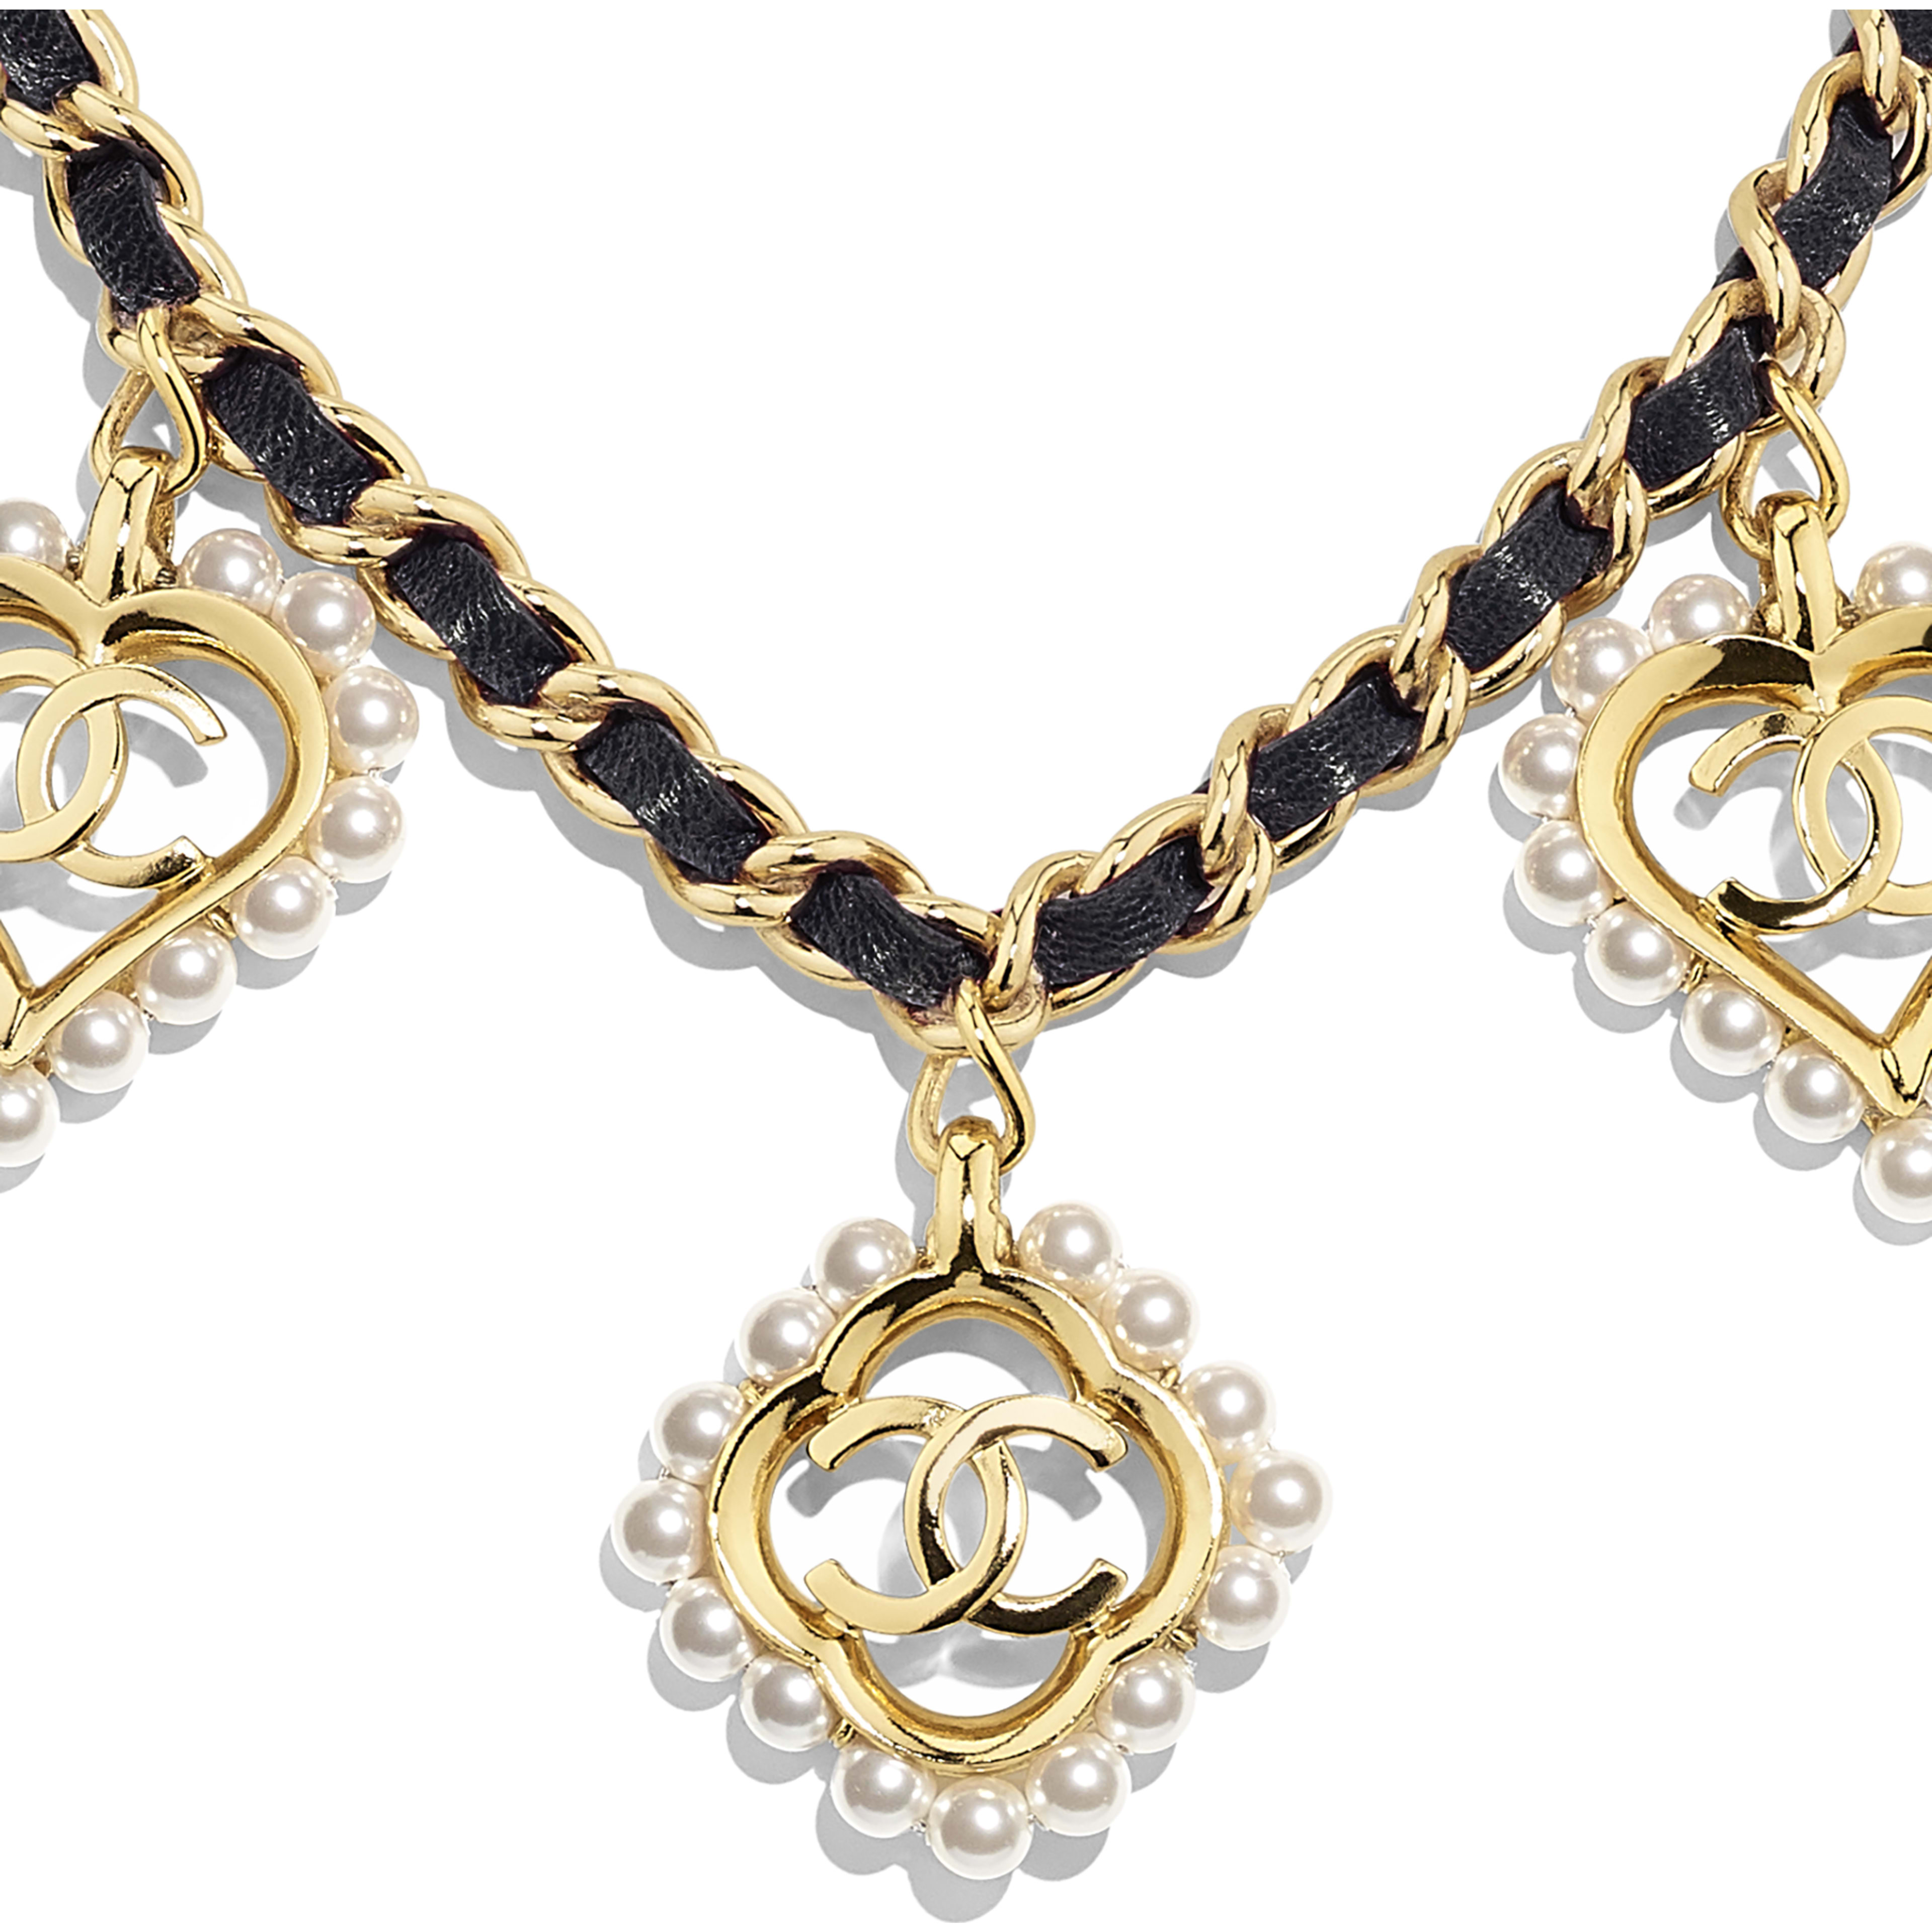 Necklace - Gold, Black & Pearly White - Metal, Calfskin & Glass Pearls - Other view - see full sized version